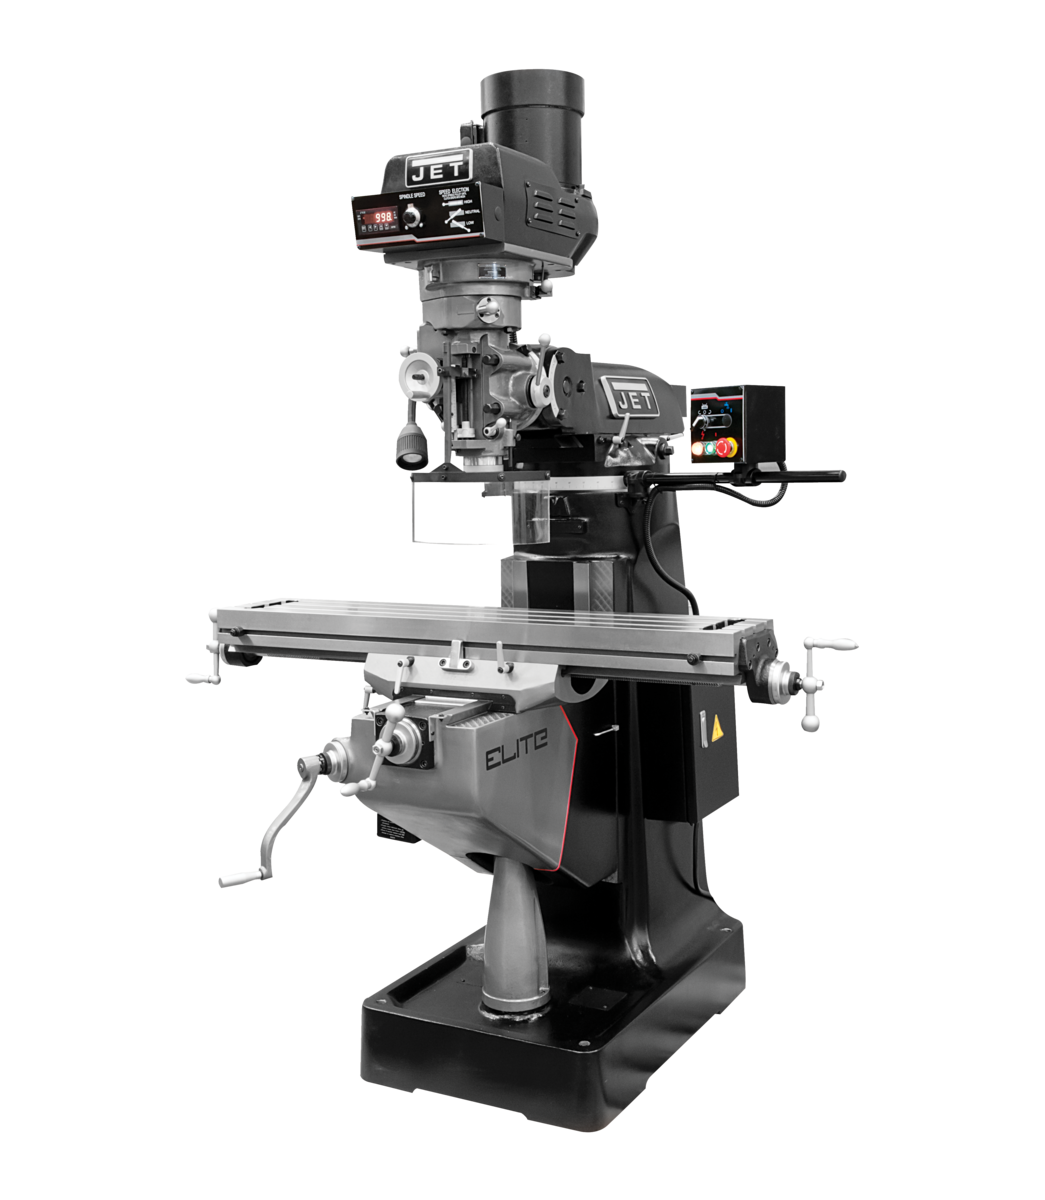 EVS-949 Mill with 3-Axis Newall DP700 (Quill) DRO and Servo X, Y-Axis Powerfeeds and USA Air Powered Draw Bar